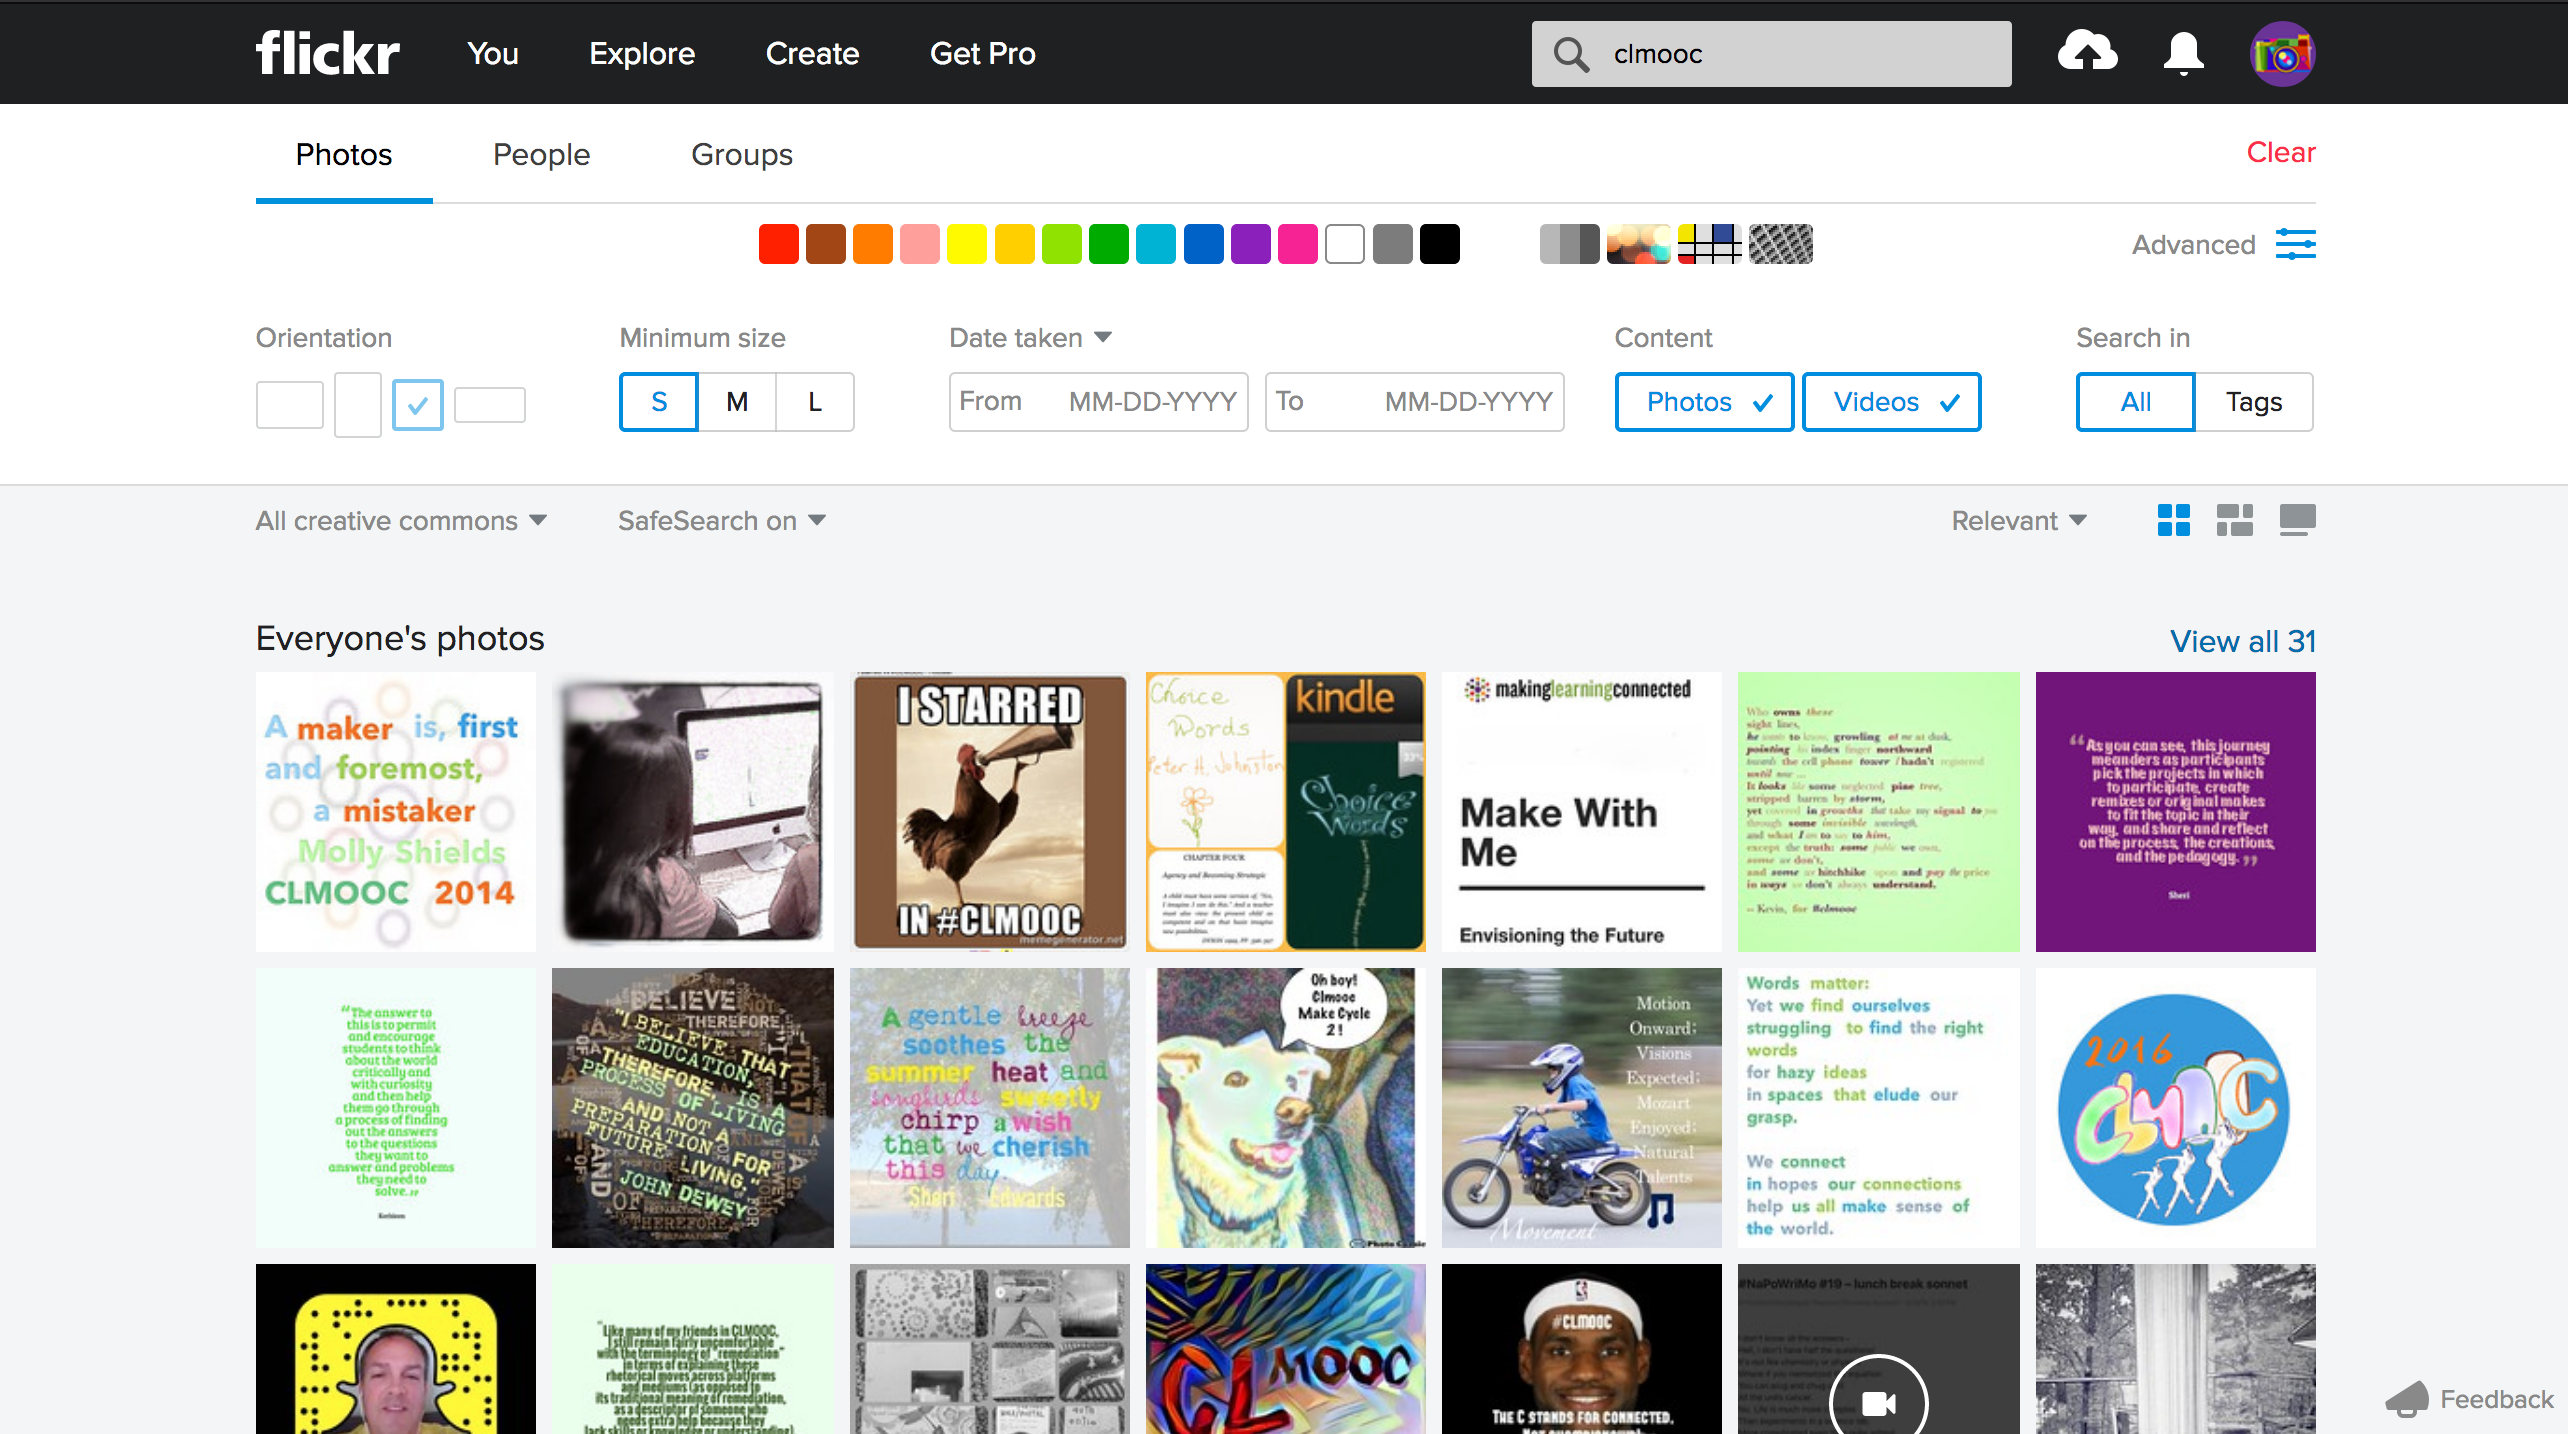 screenshot of creative commons and square image on flickr using advanced search tools